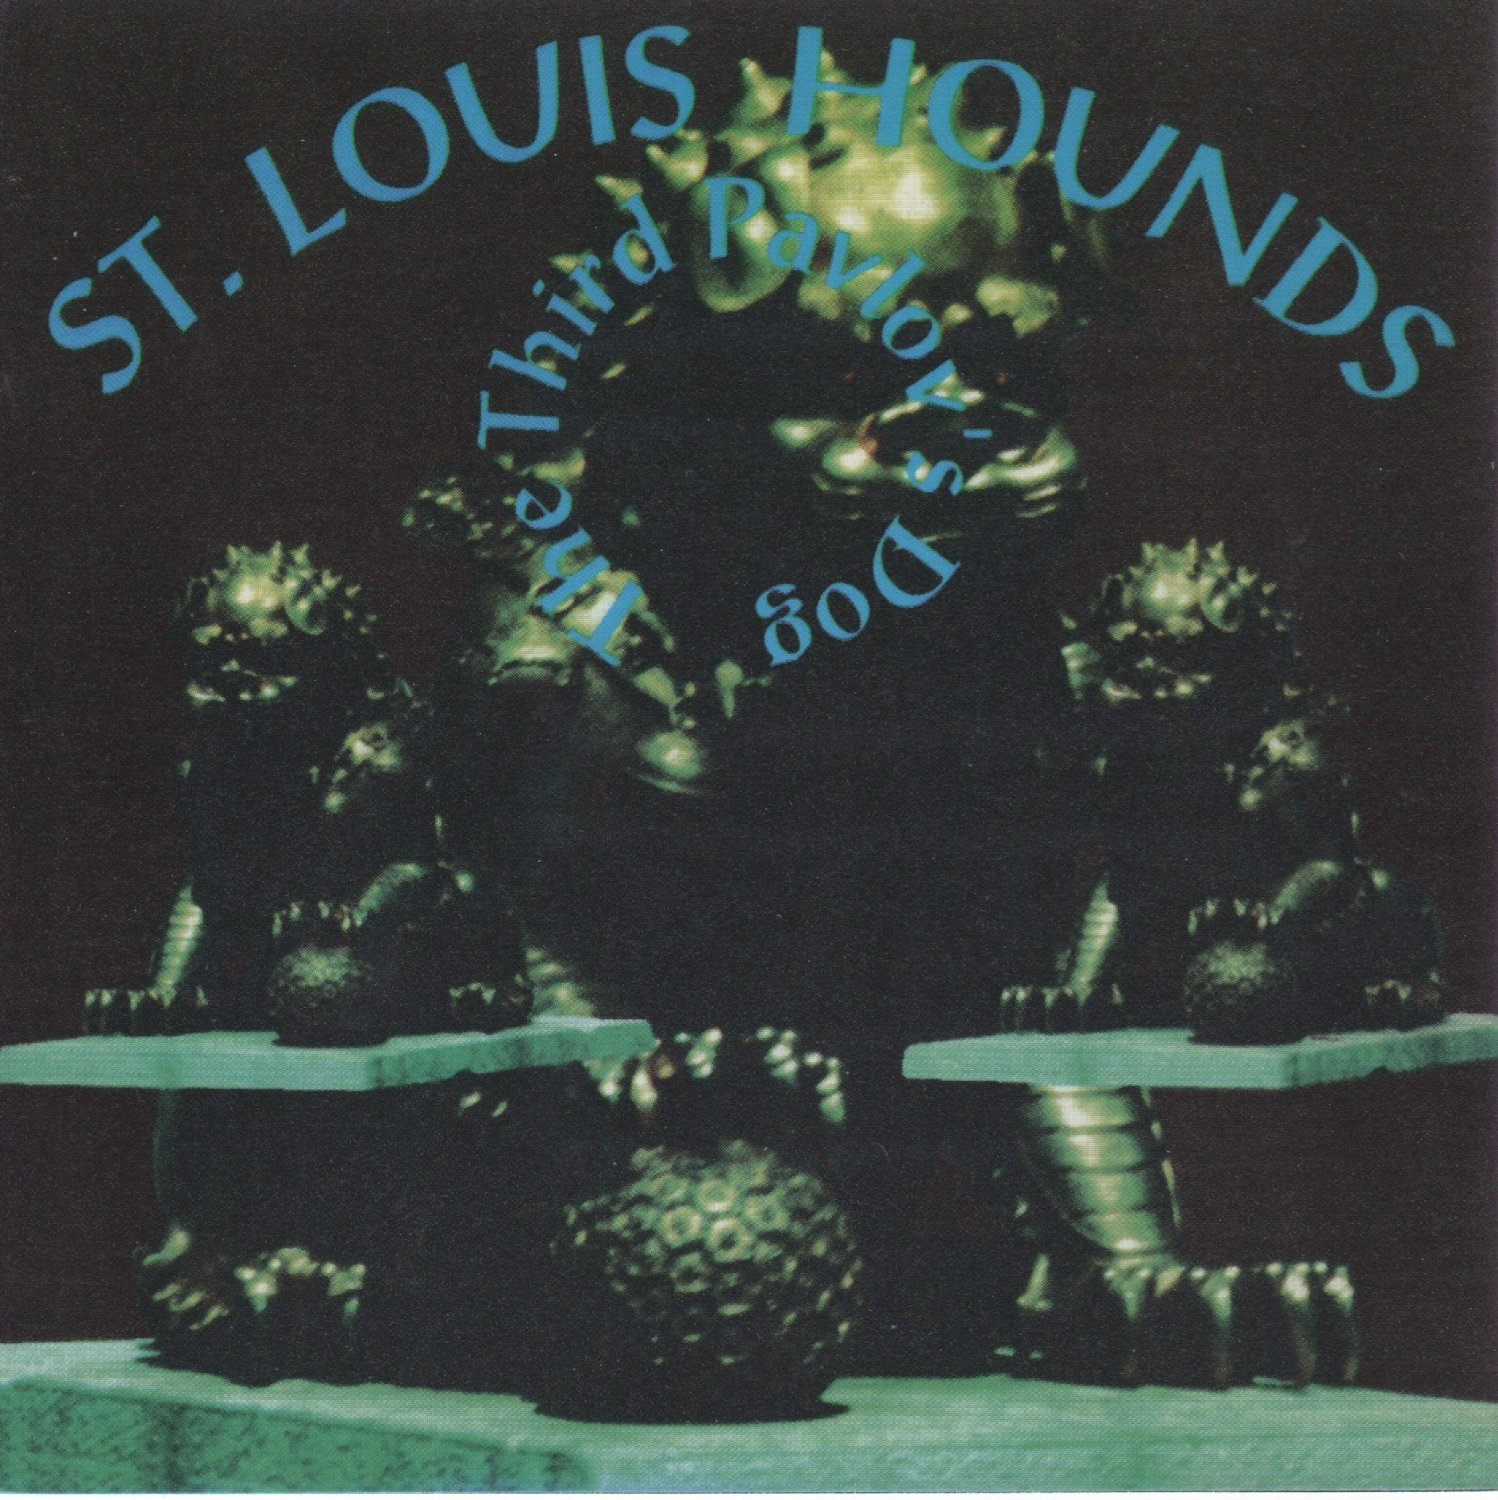 Pavlov's Dog — St. Louis Hounds